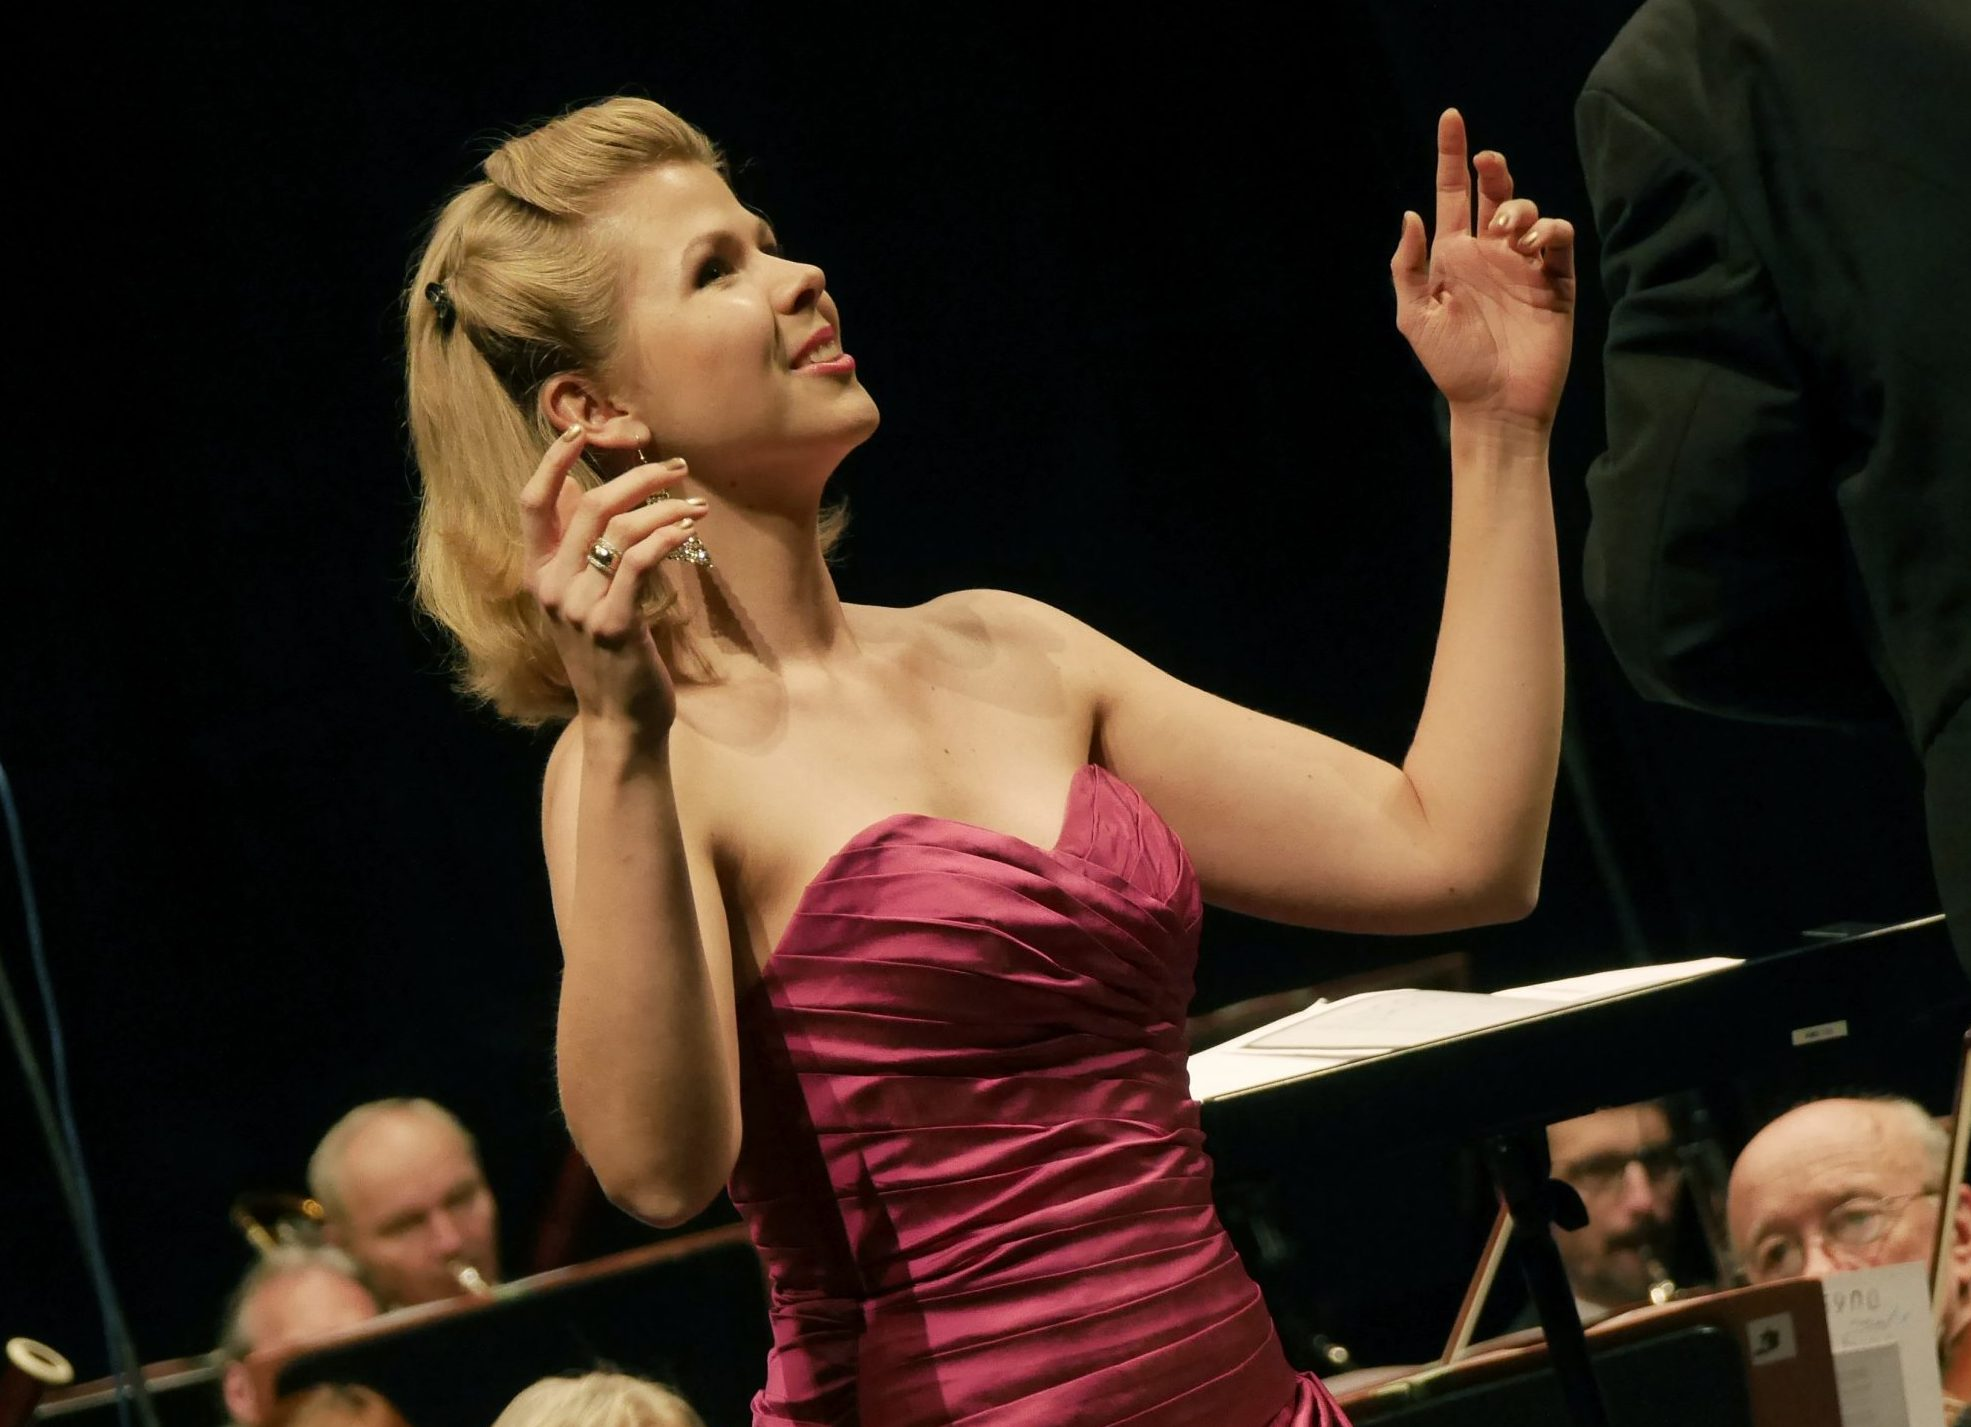 Czech soprano Lucie Kaňková starts new season with Queen of the Night and La Traviata in Odessa, Prague and Chisinau